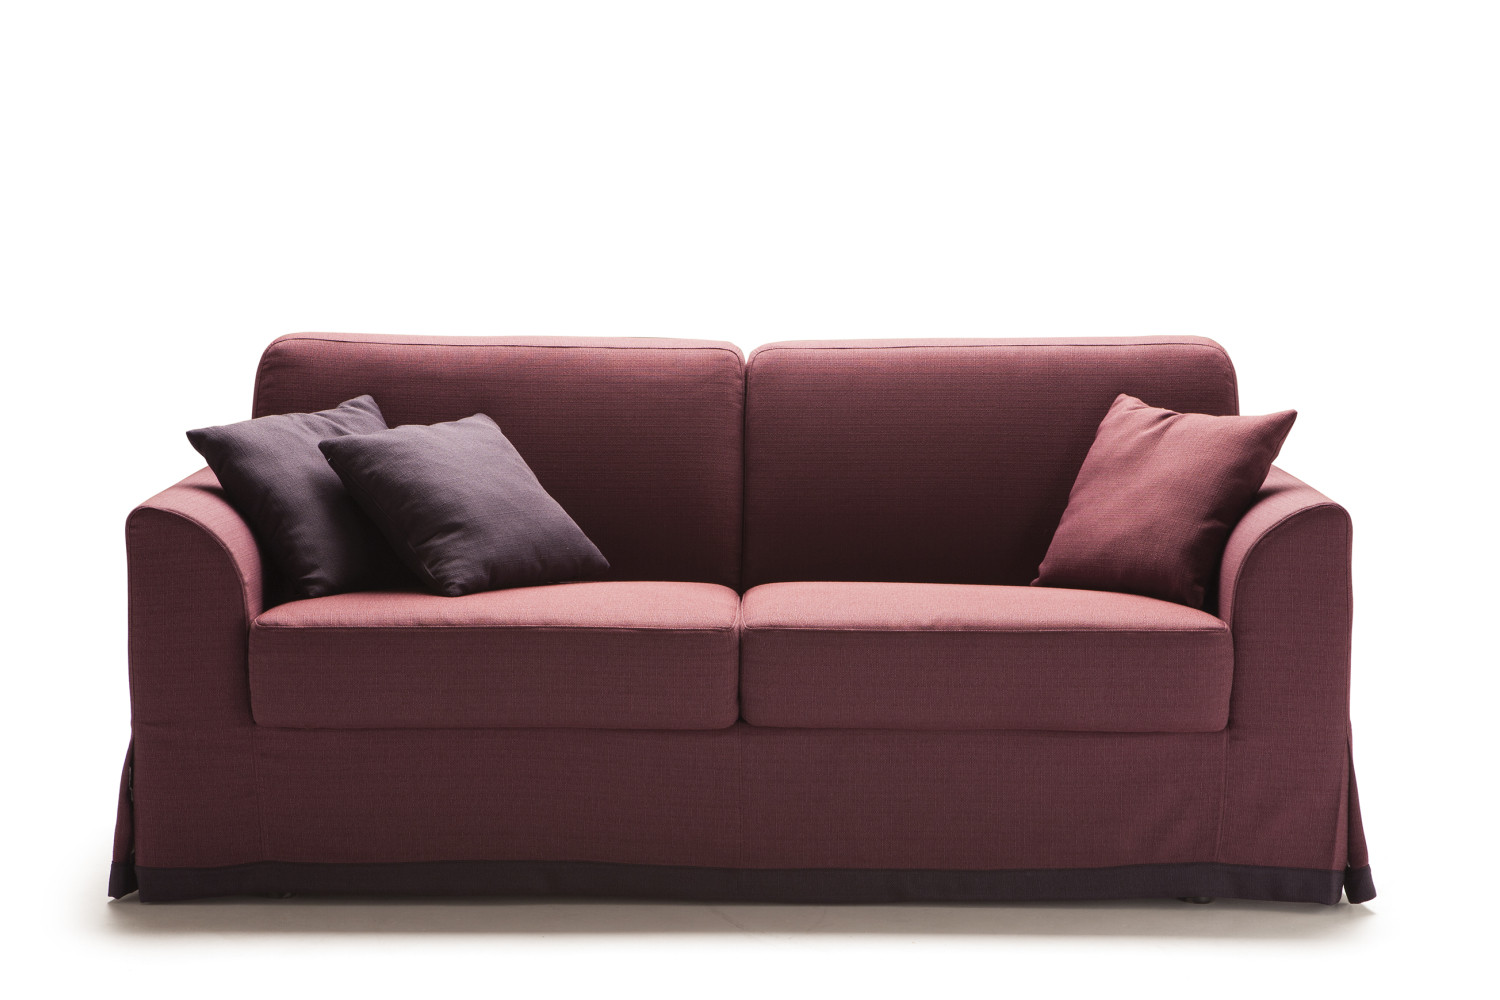 Best sofa bed under 200 for Sofa 250 x 200